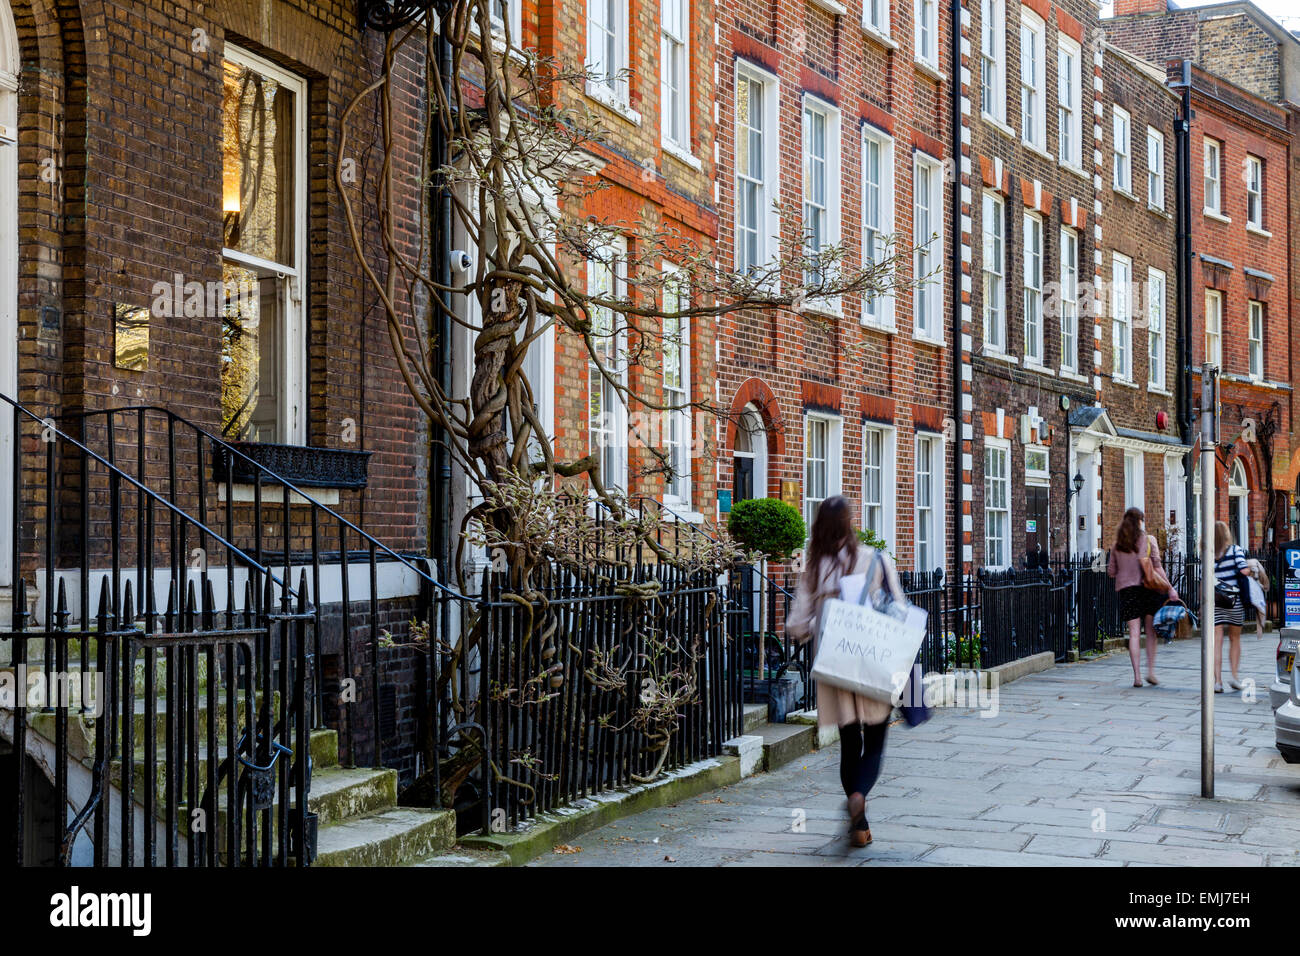 Historical Buildings On Richmond Green, Richmond Upon Thames, London, England - Stock Image